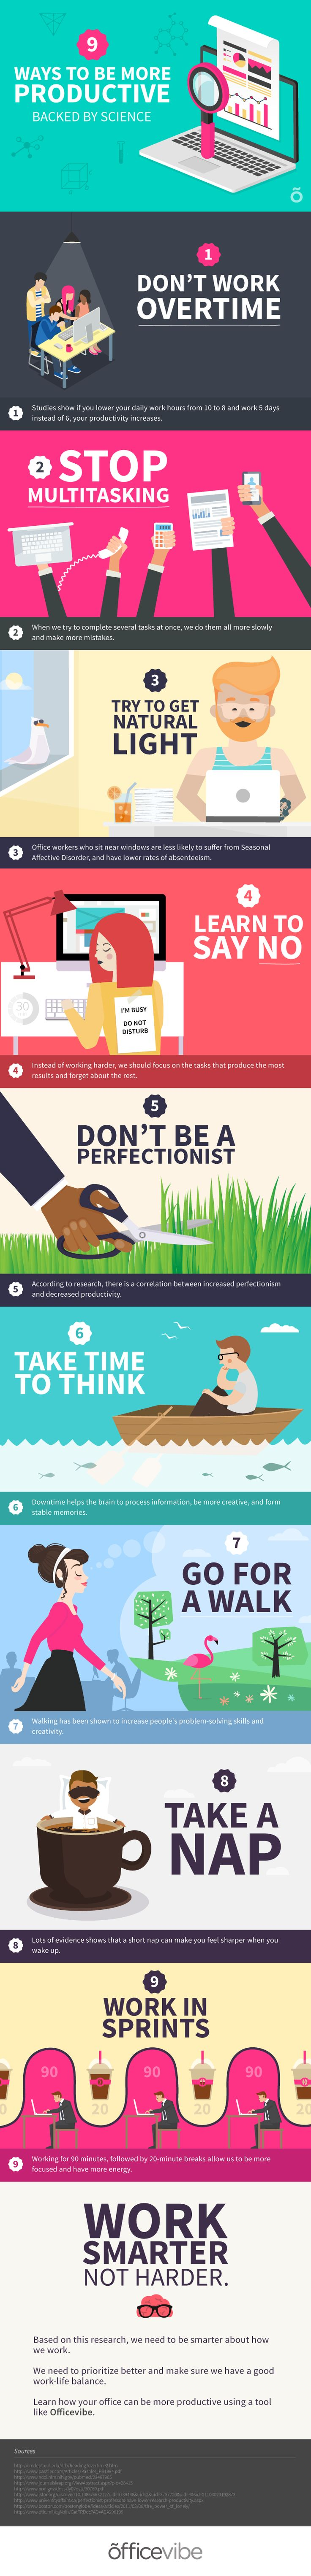 How To Be More Productive At Work; Backed By Science [INFOGRAPHIC]